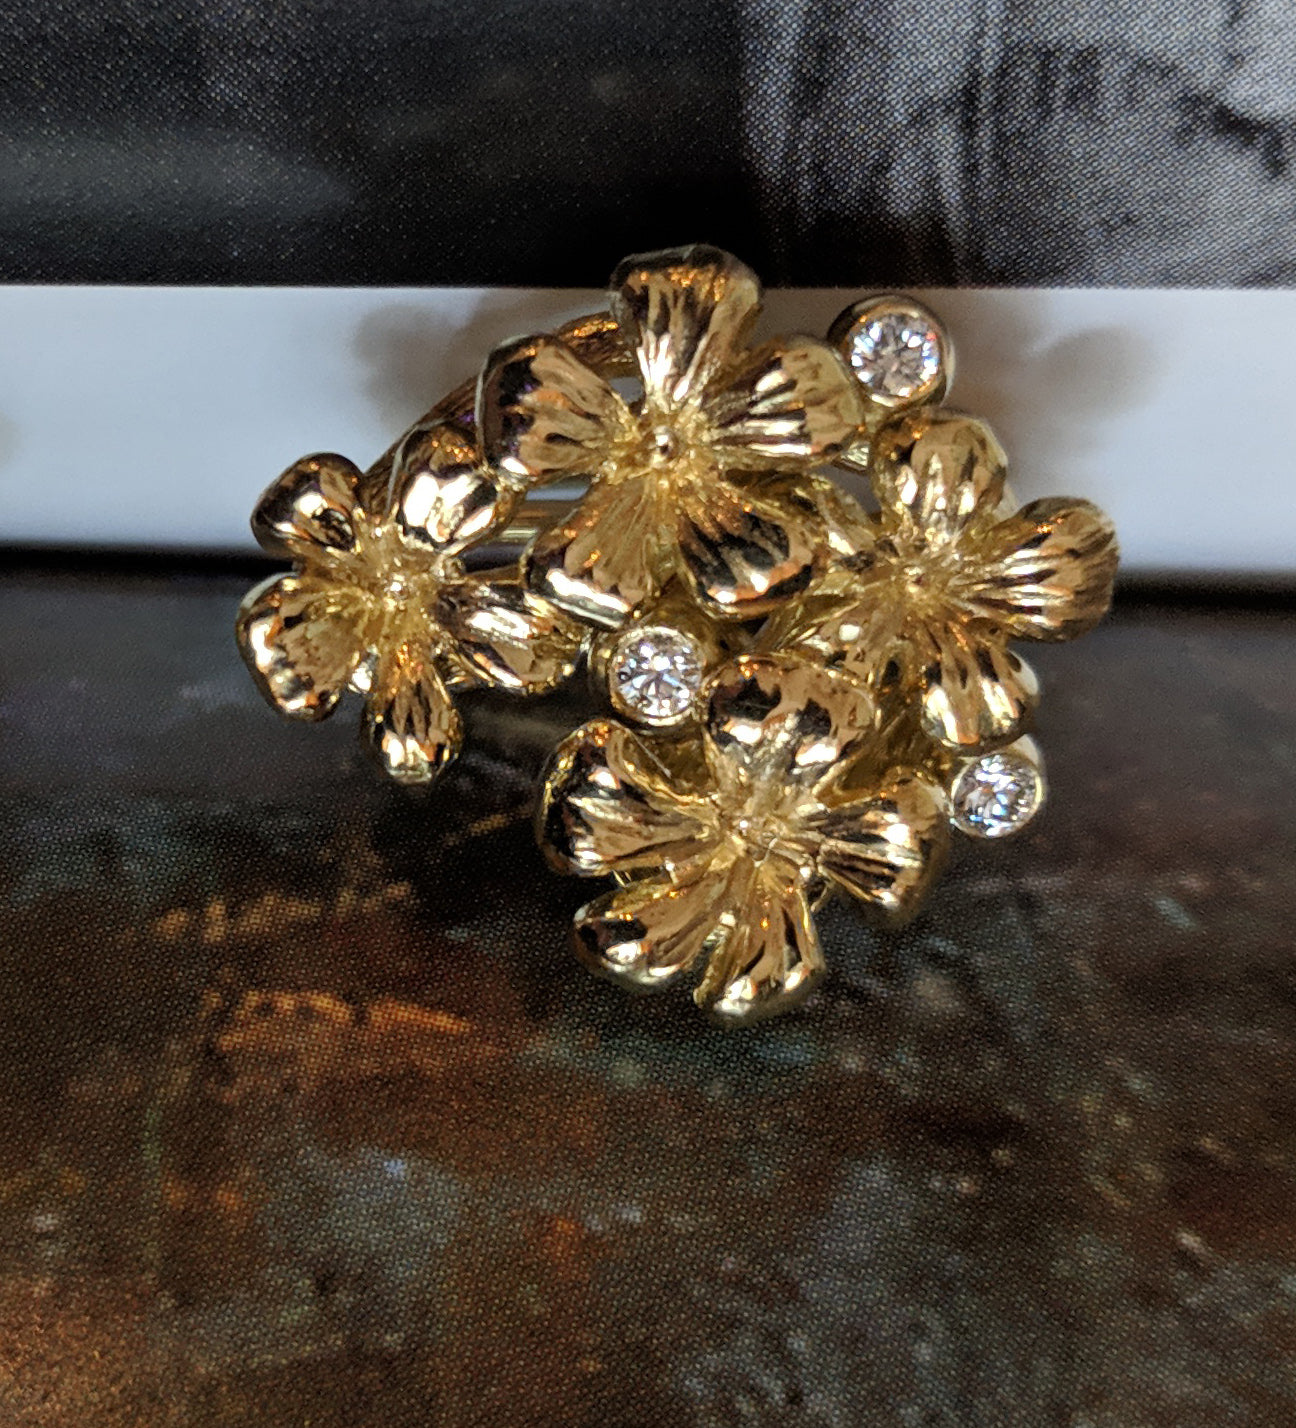 18 Karat Yellow Gold Transformer Plum Blossom Brooch with Diamonds